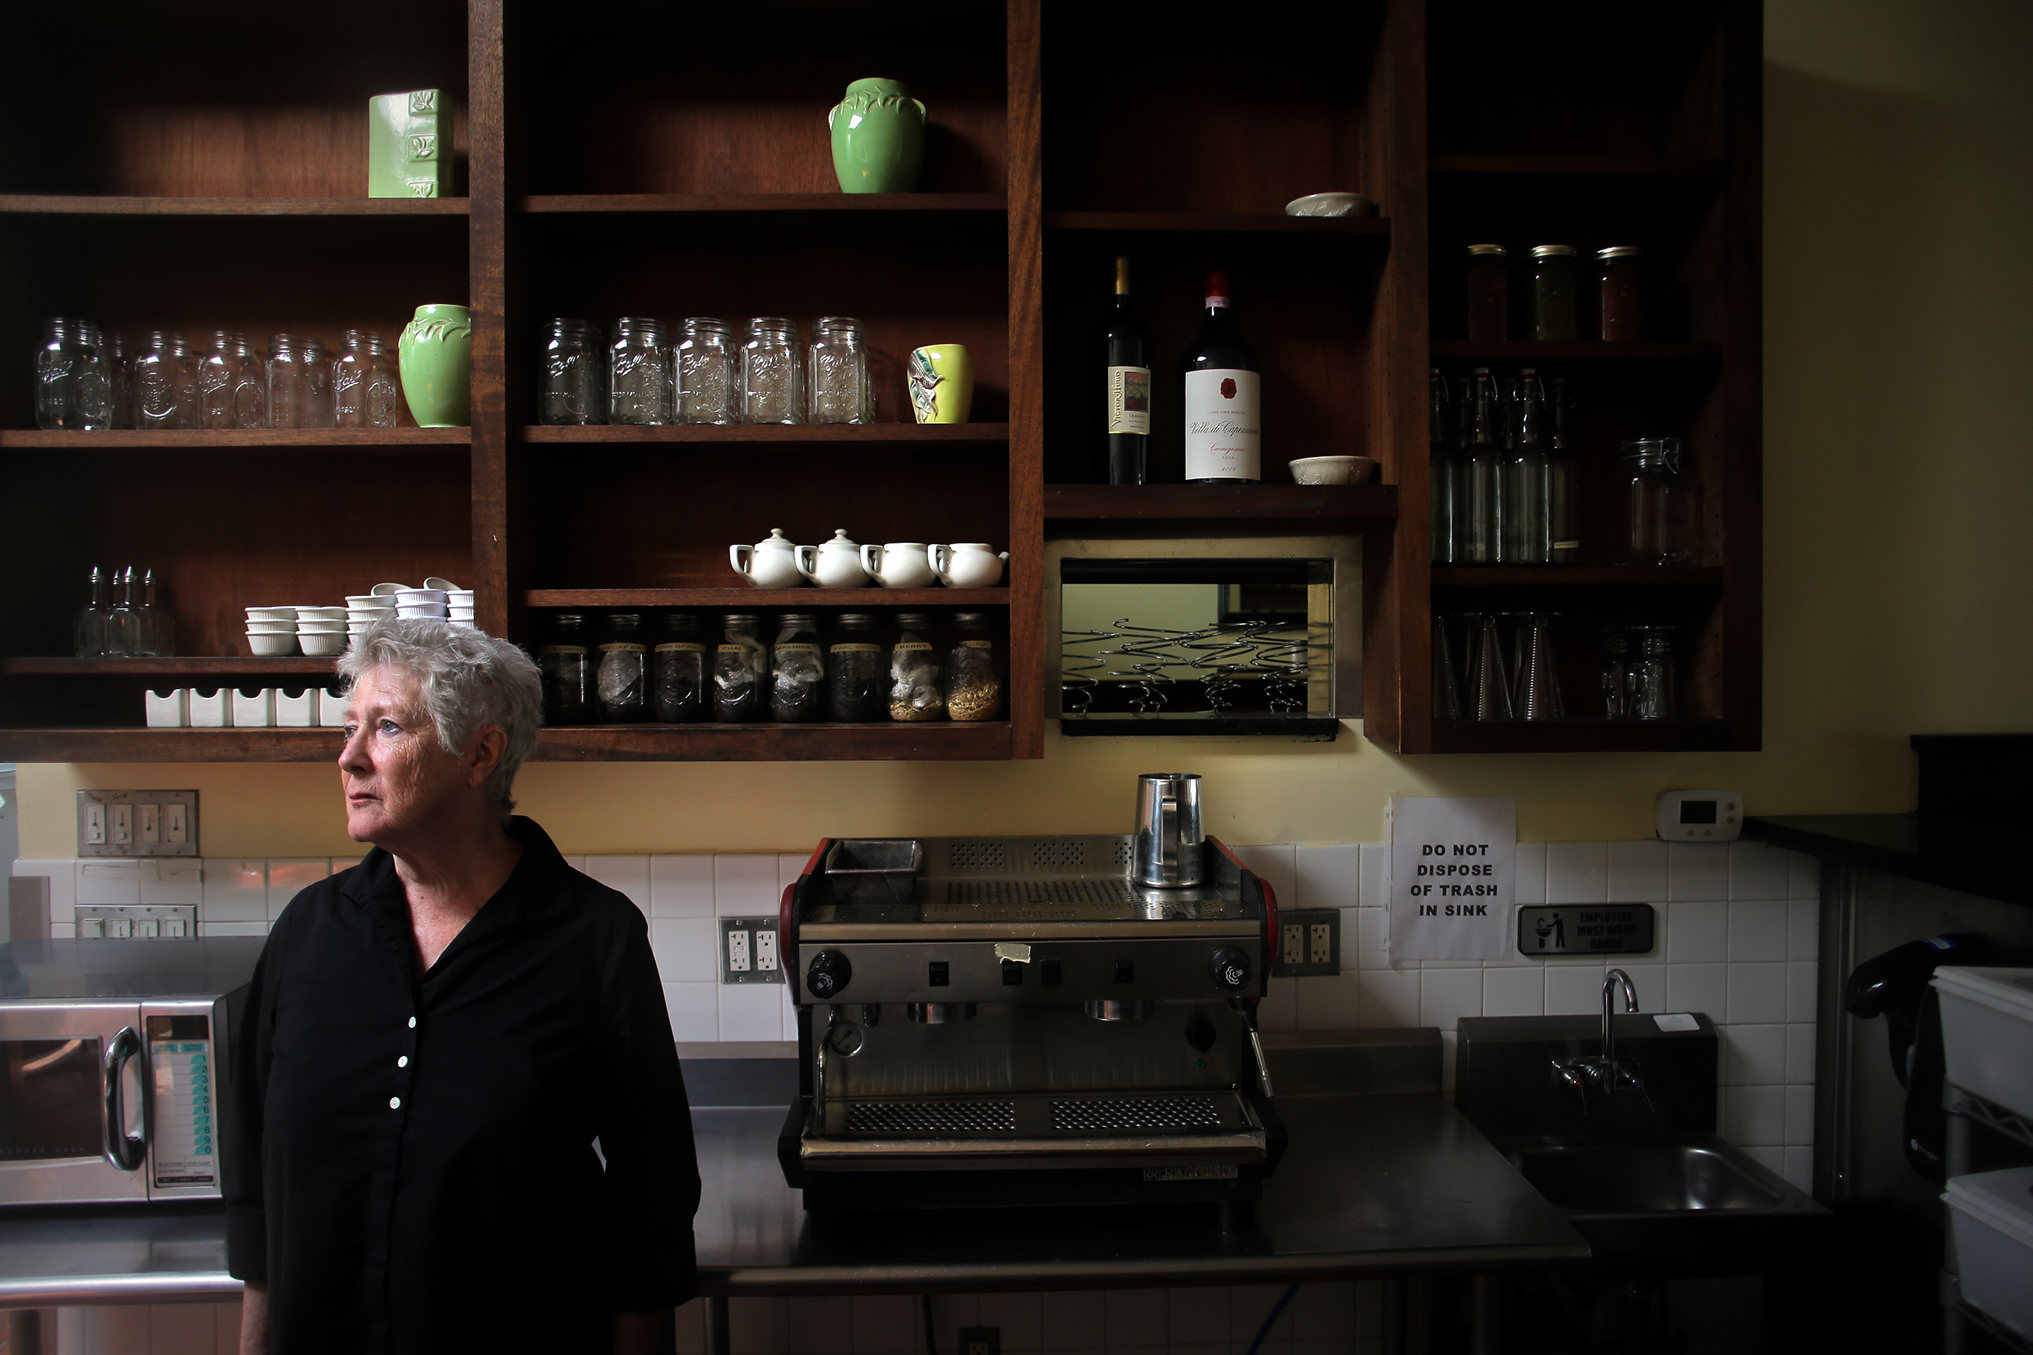 Ginnie Curcio closed her Stellina Restaurant after three decades in Watertown Square, with the COVID-19 coronavirus pandemic sealing the decision for her.